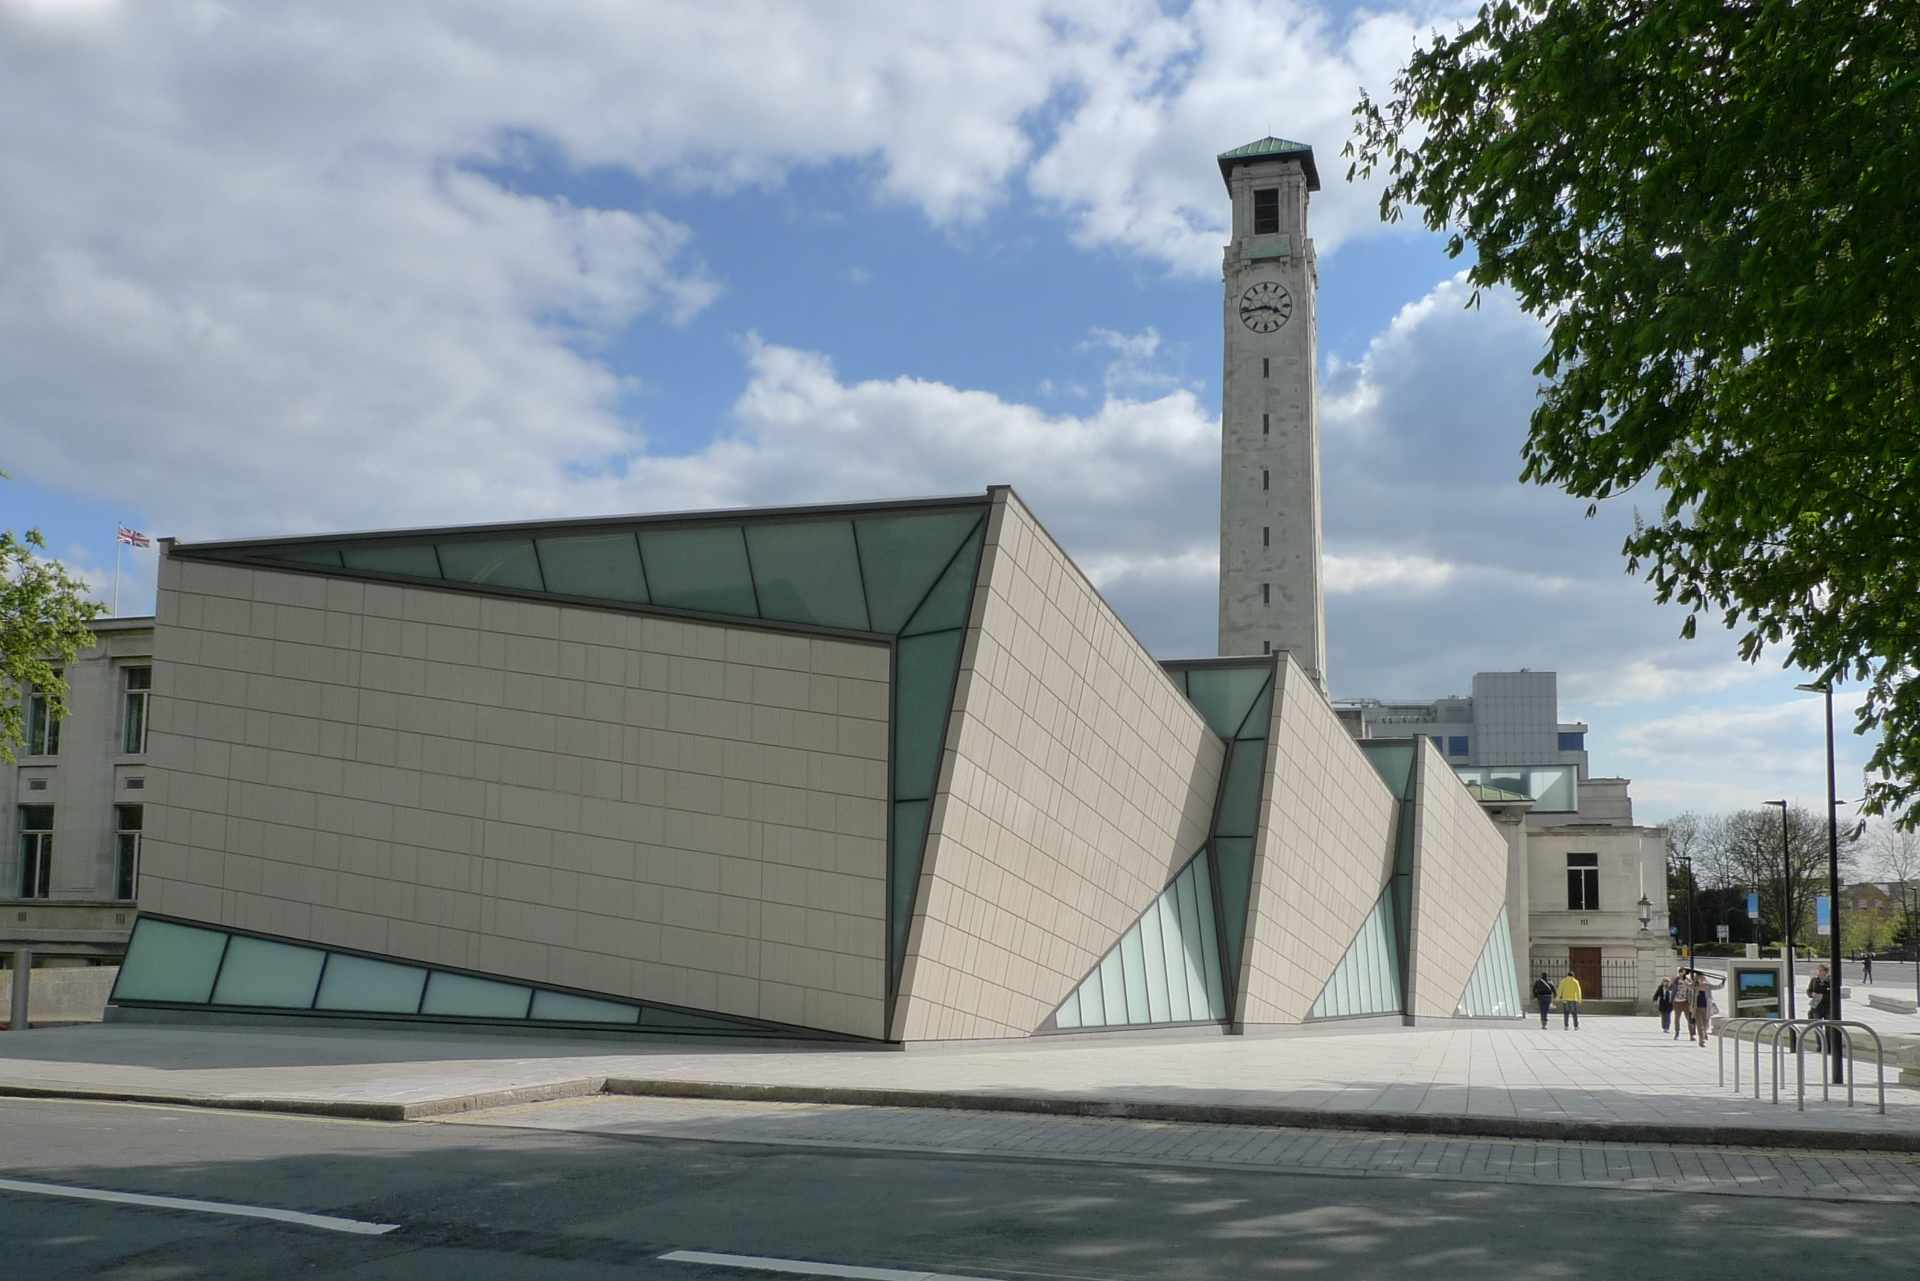 exterior-of-seacity-museum-with-clocktower-on-sunny-day